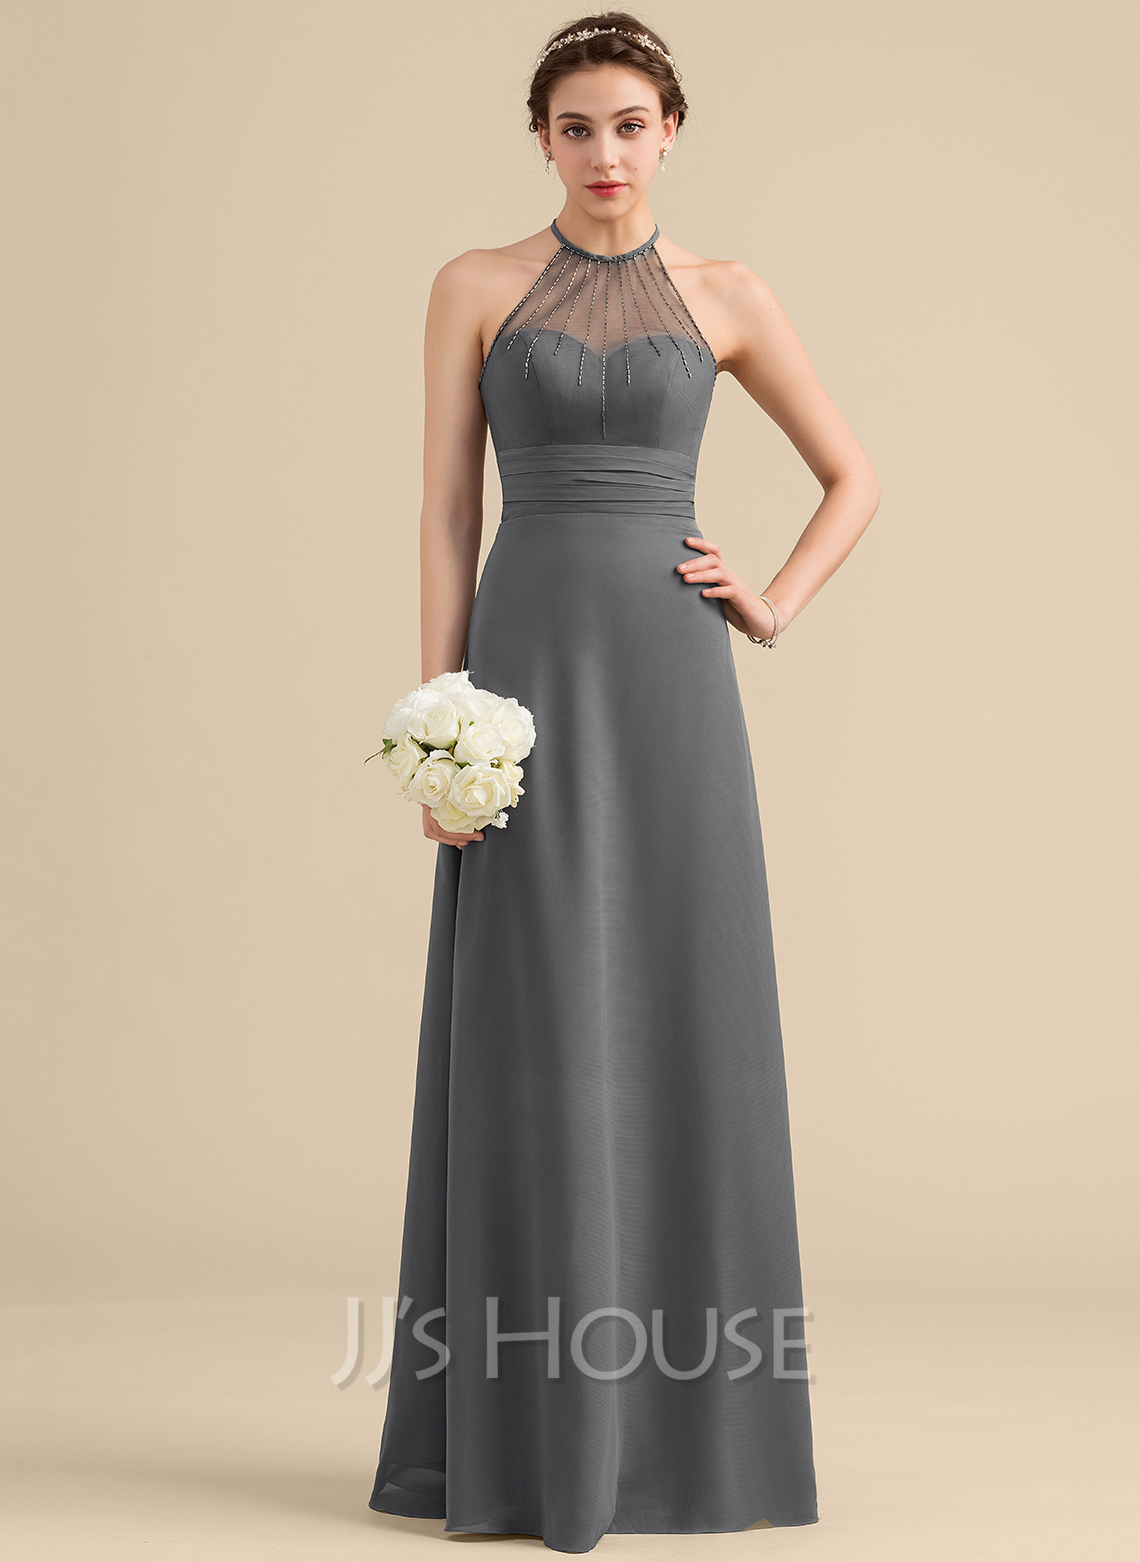 Scoop Neck Floor-Length Chiffon Bridesmaid Dress With Beading